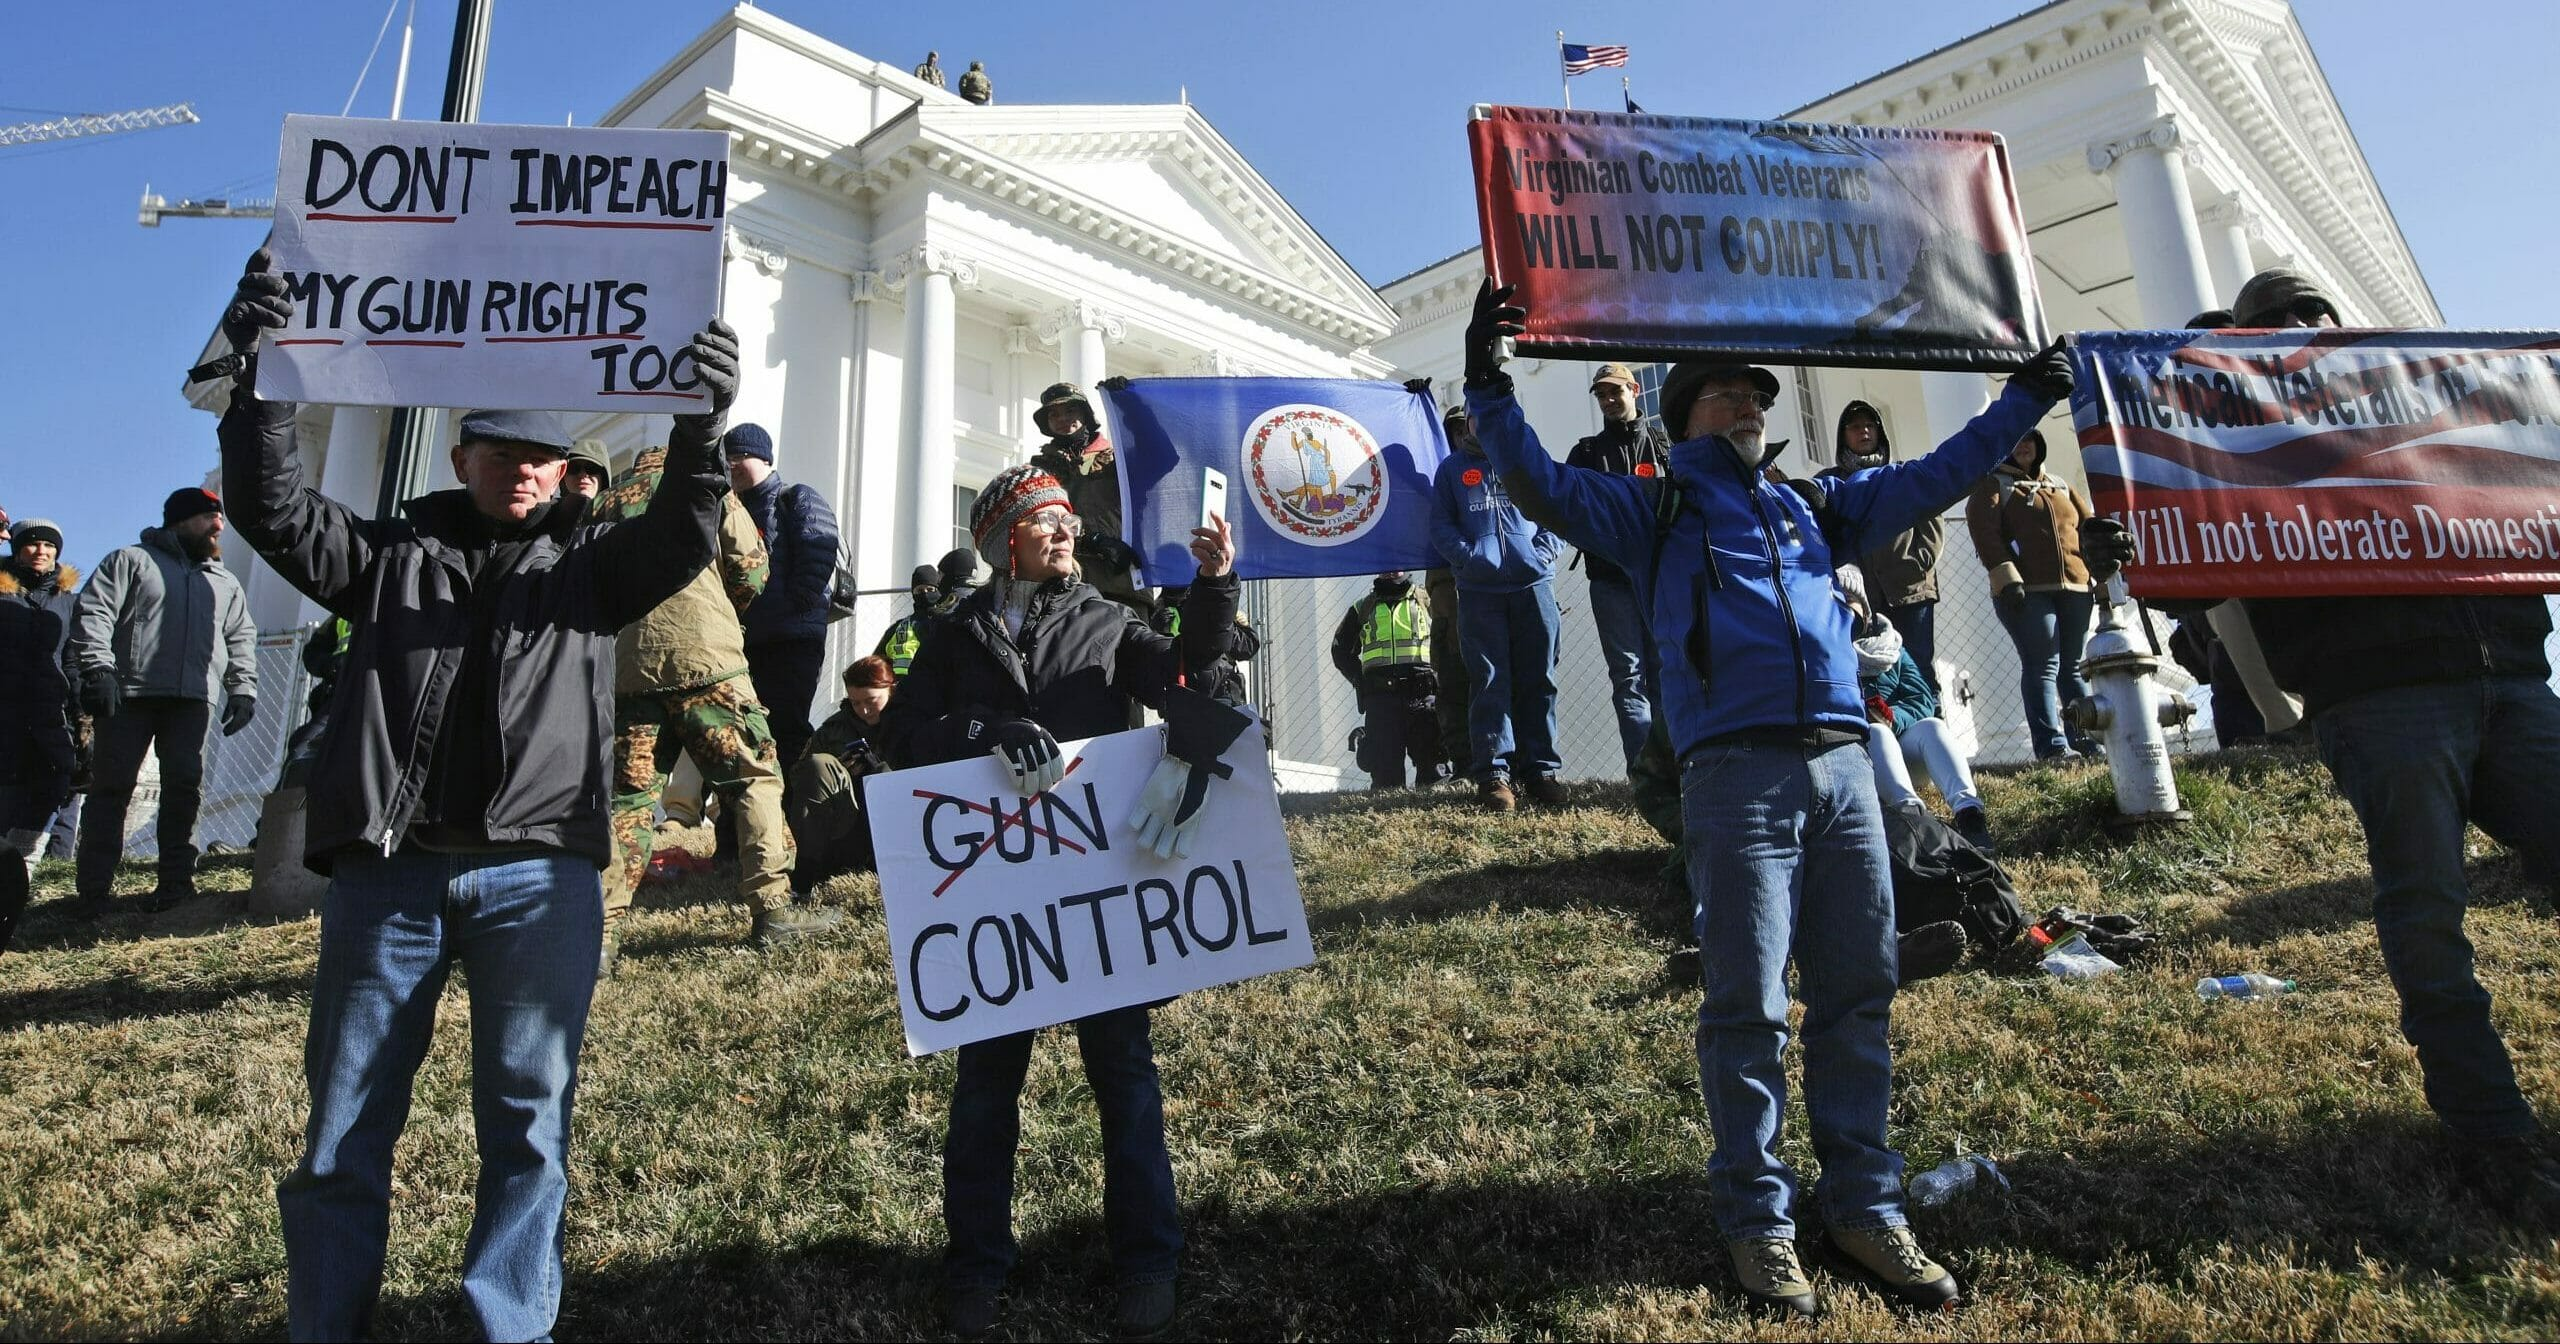 This Jan. 20, 2020, file photo shows pro-gun demonstrators holding signs in front of the Virginia State Capitol in Richmond, Virginia.